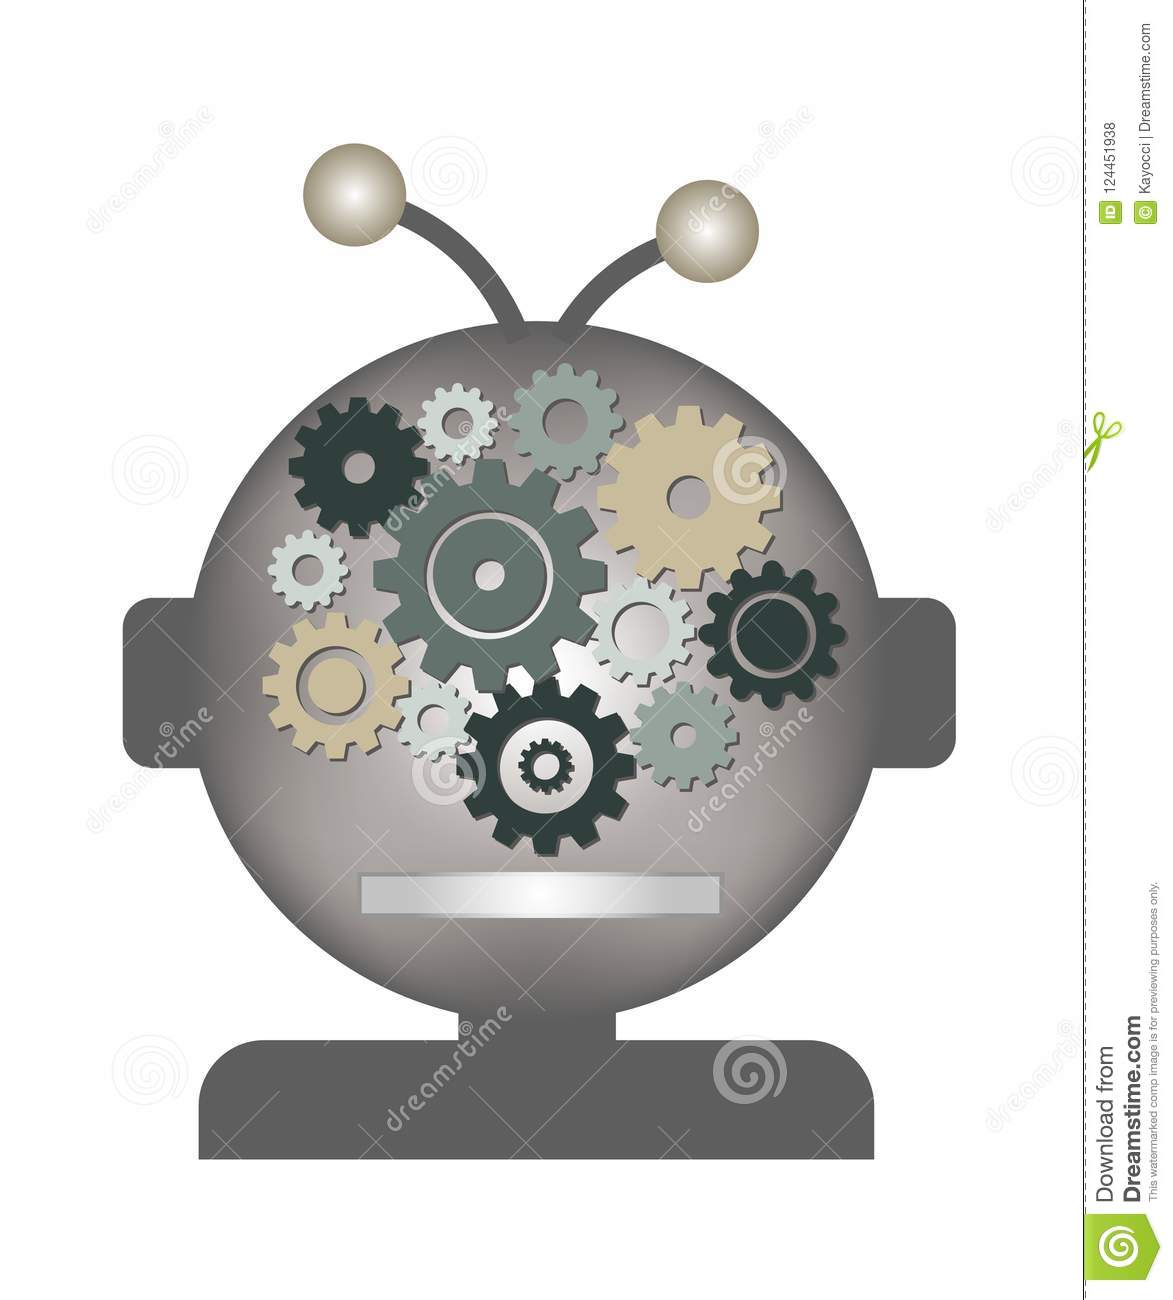 artificial intelligence ai space alien stock vector